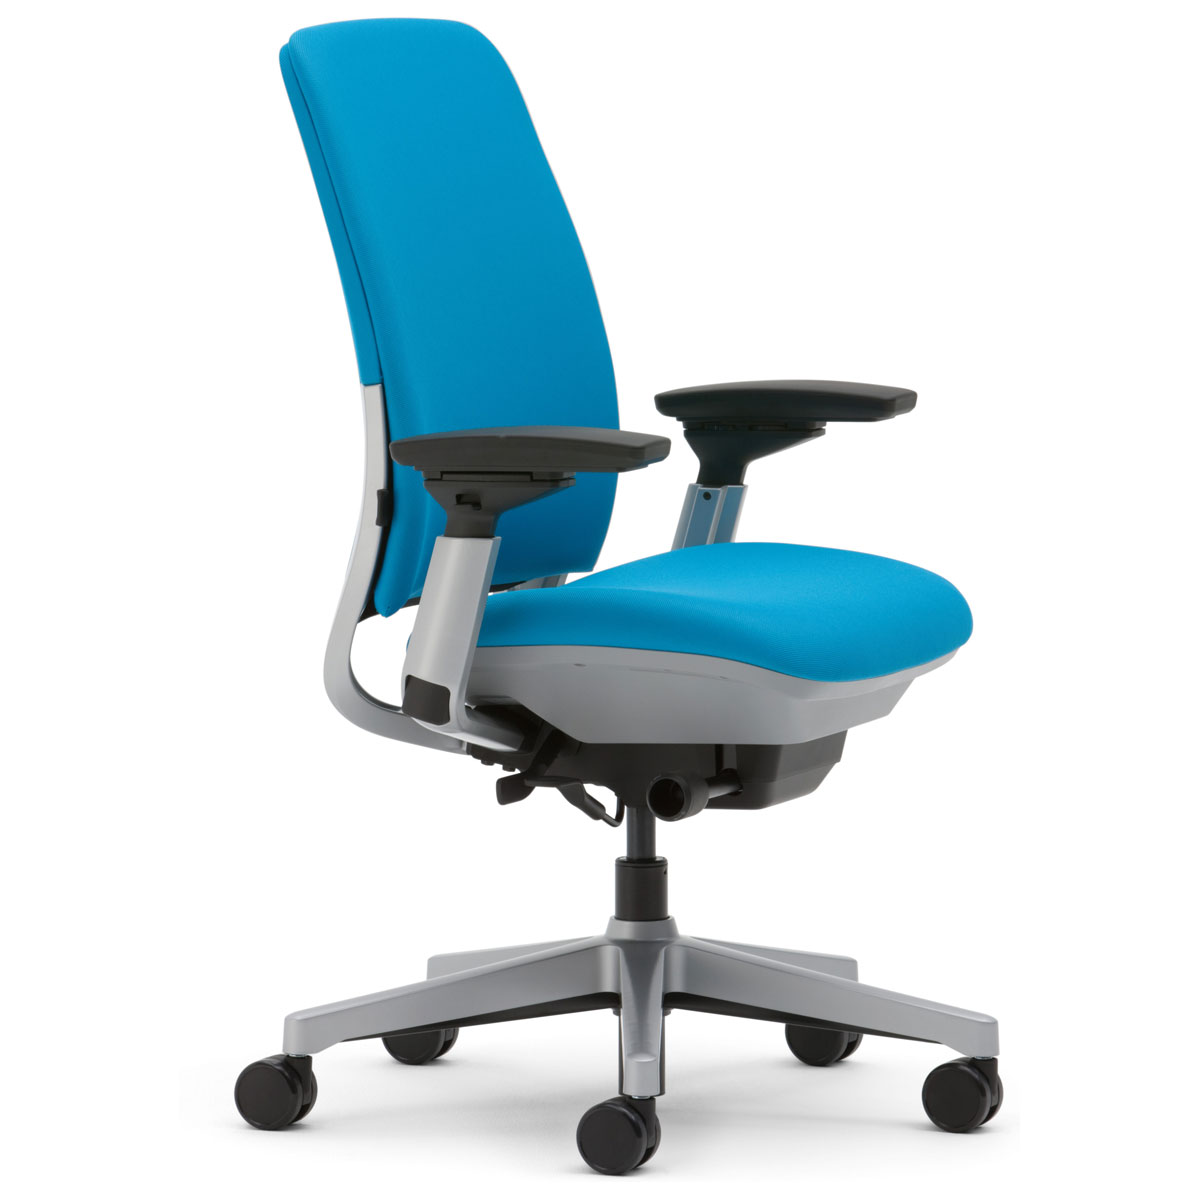 Steelcase Chairs Steelcase Amia Chair Steelcase Amia Chair Family